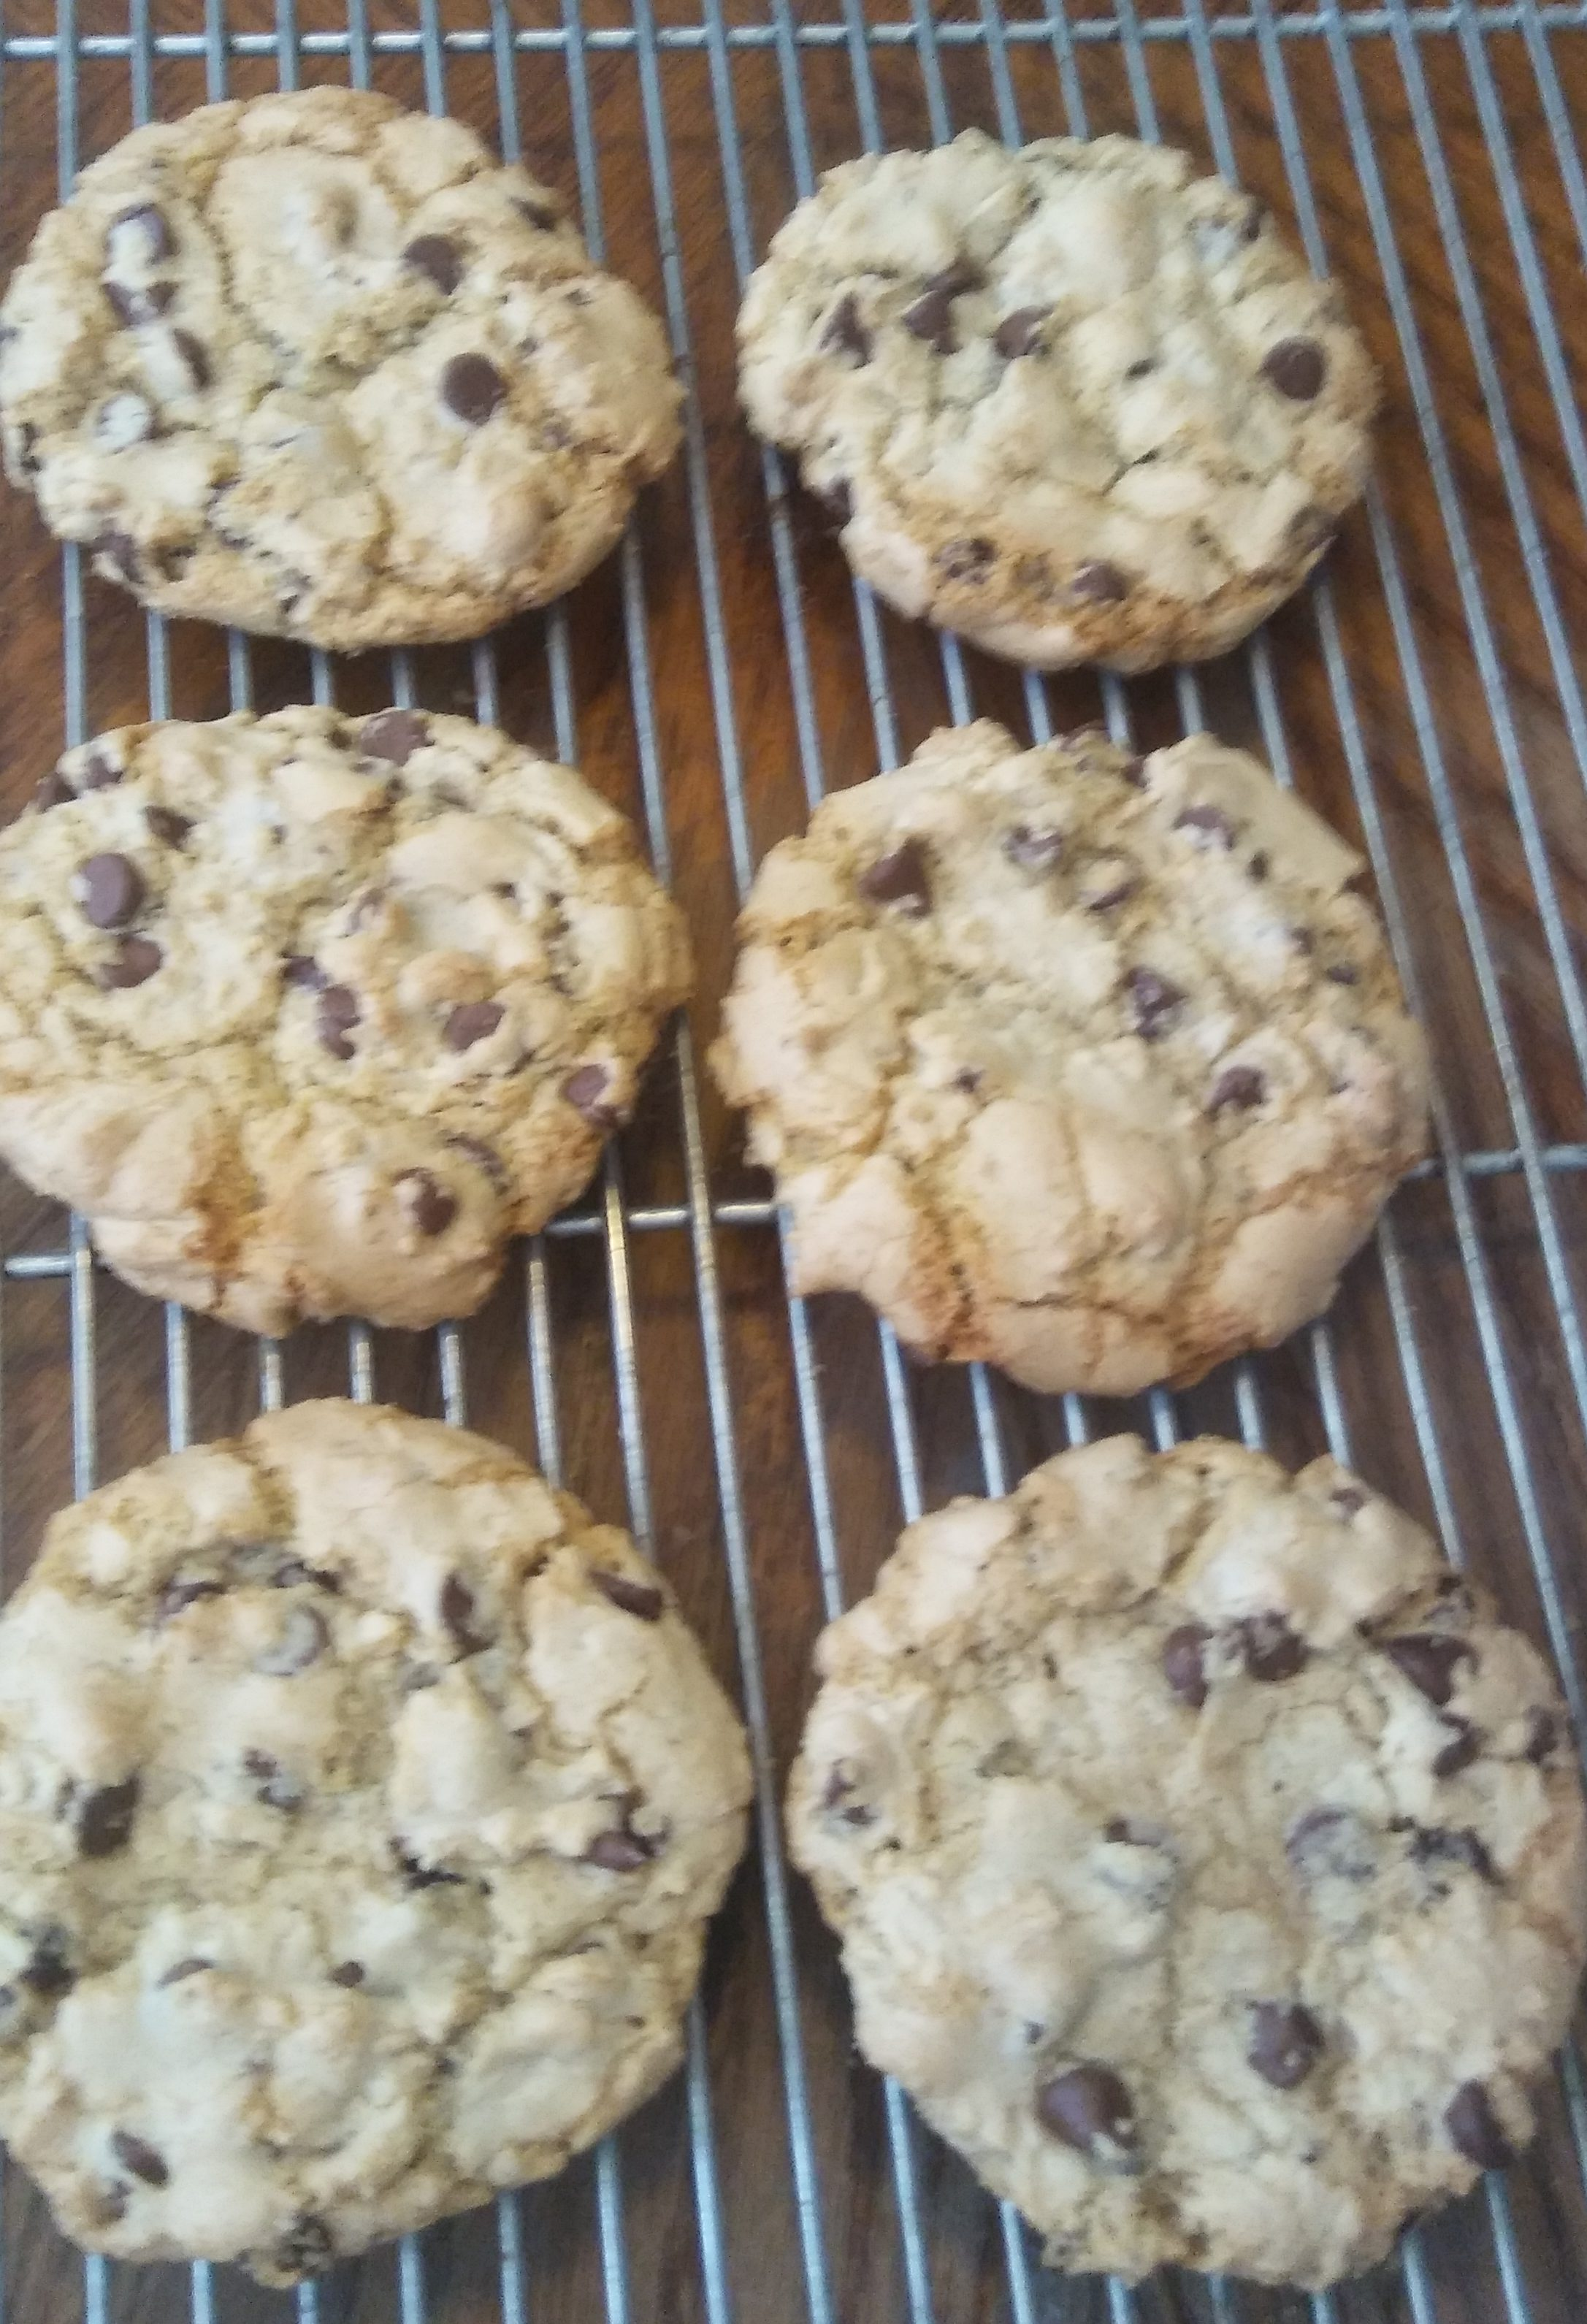 Large Chocolate Chip Cookie Recipe- Like You Would Get In A Bakery